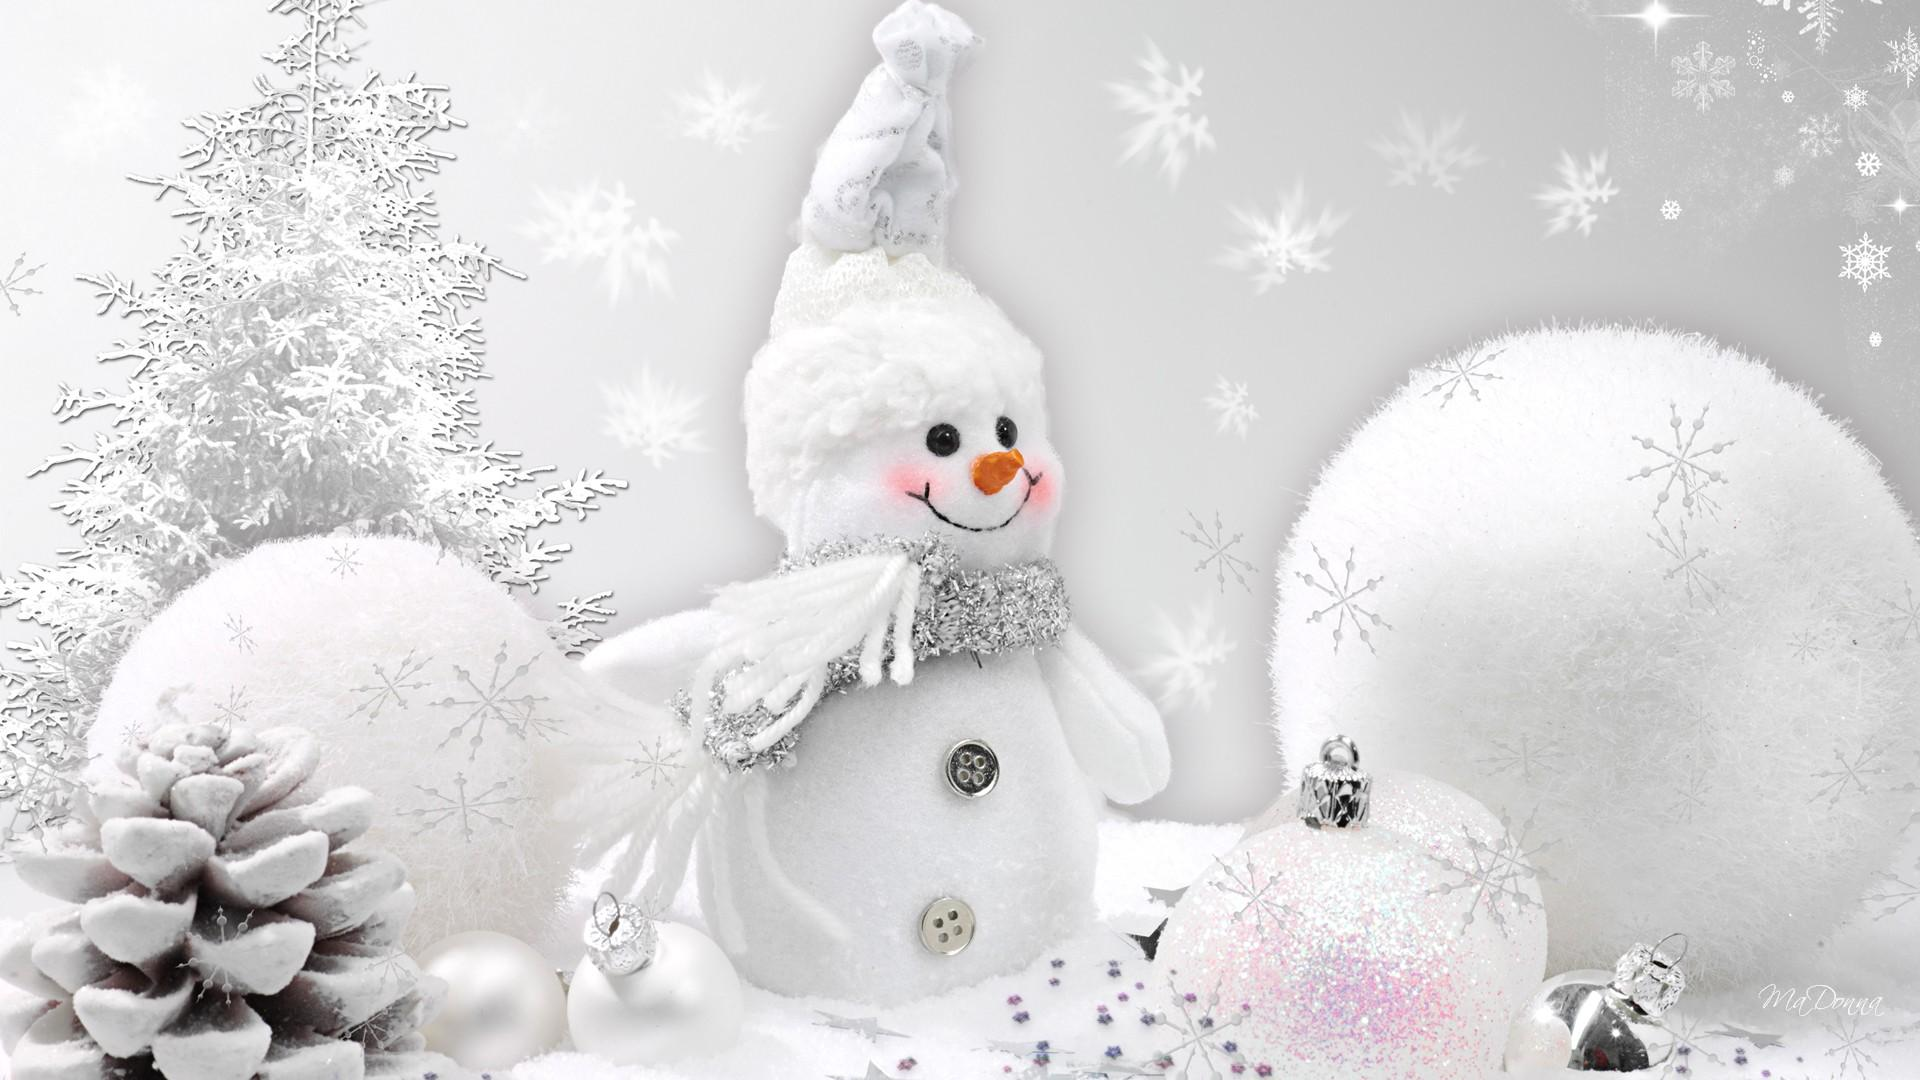 Snowman HD Backgrounds 1920x1080